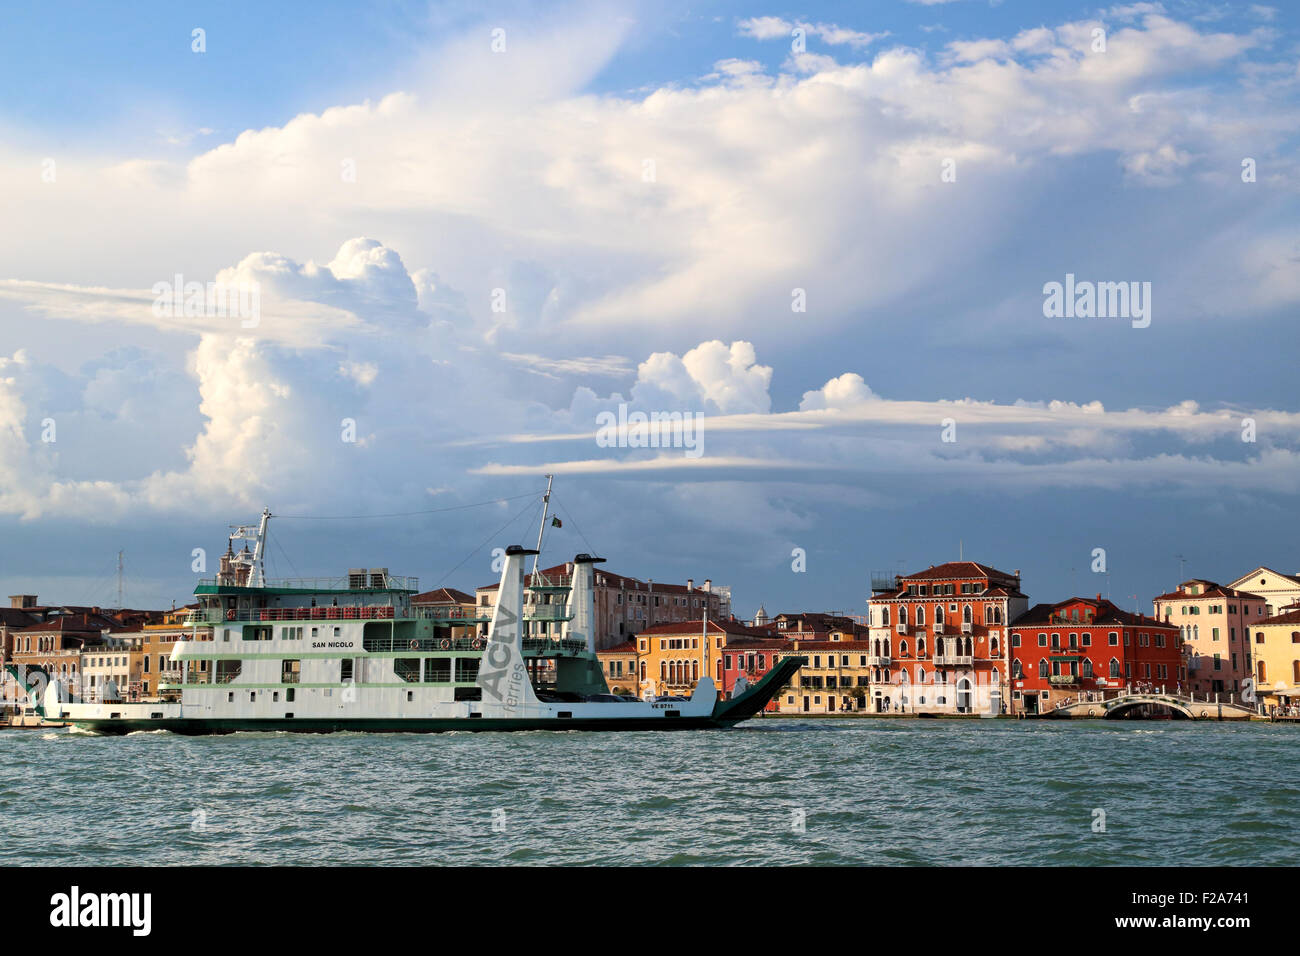 Cloud formations at Fondamenta delle Zattere waterfront. Actv ferry 'San Nicolo', IMO  9198422, going from - Stock Image